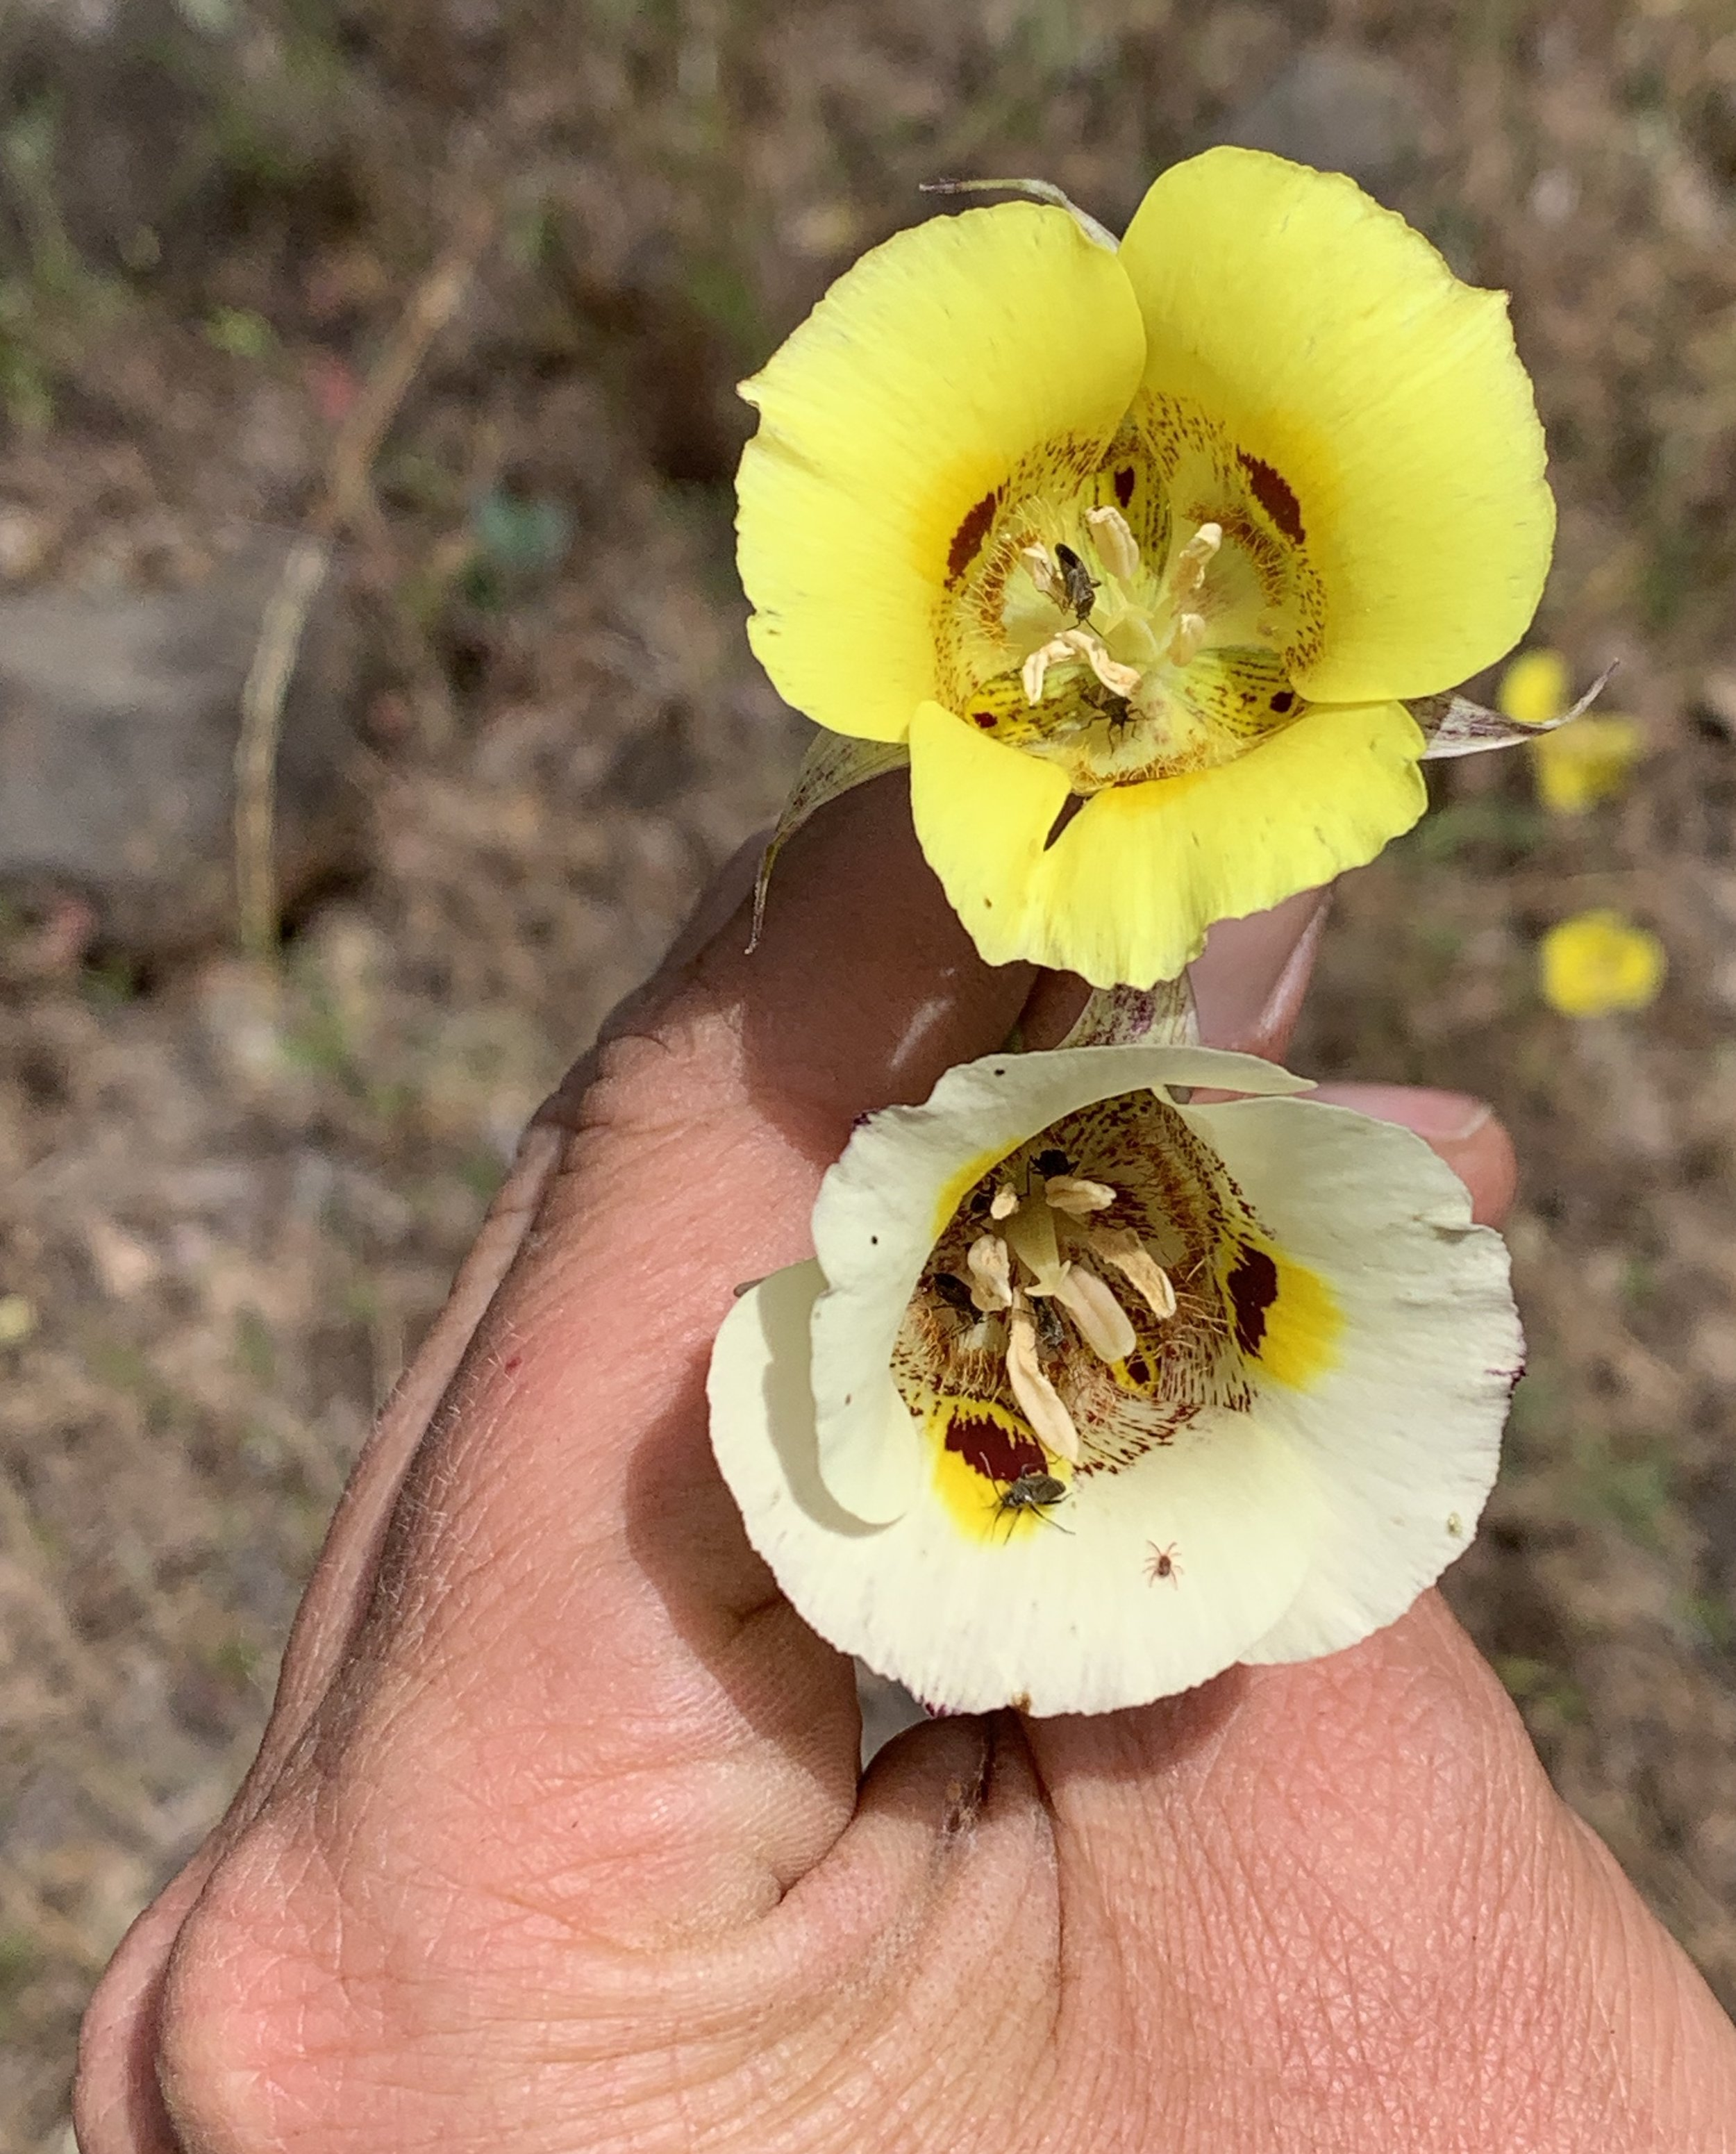 Calochortus lutes (yellow) and C. vestae (white).